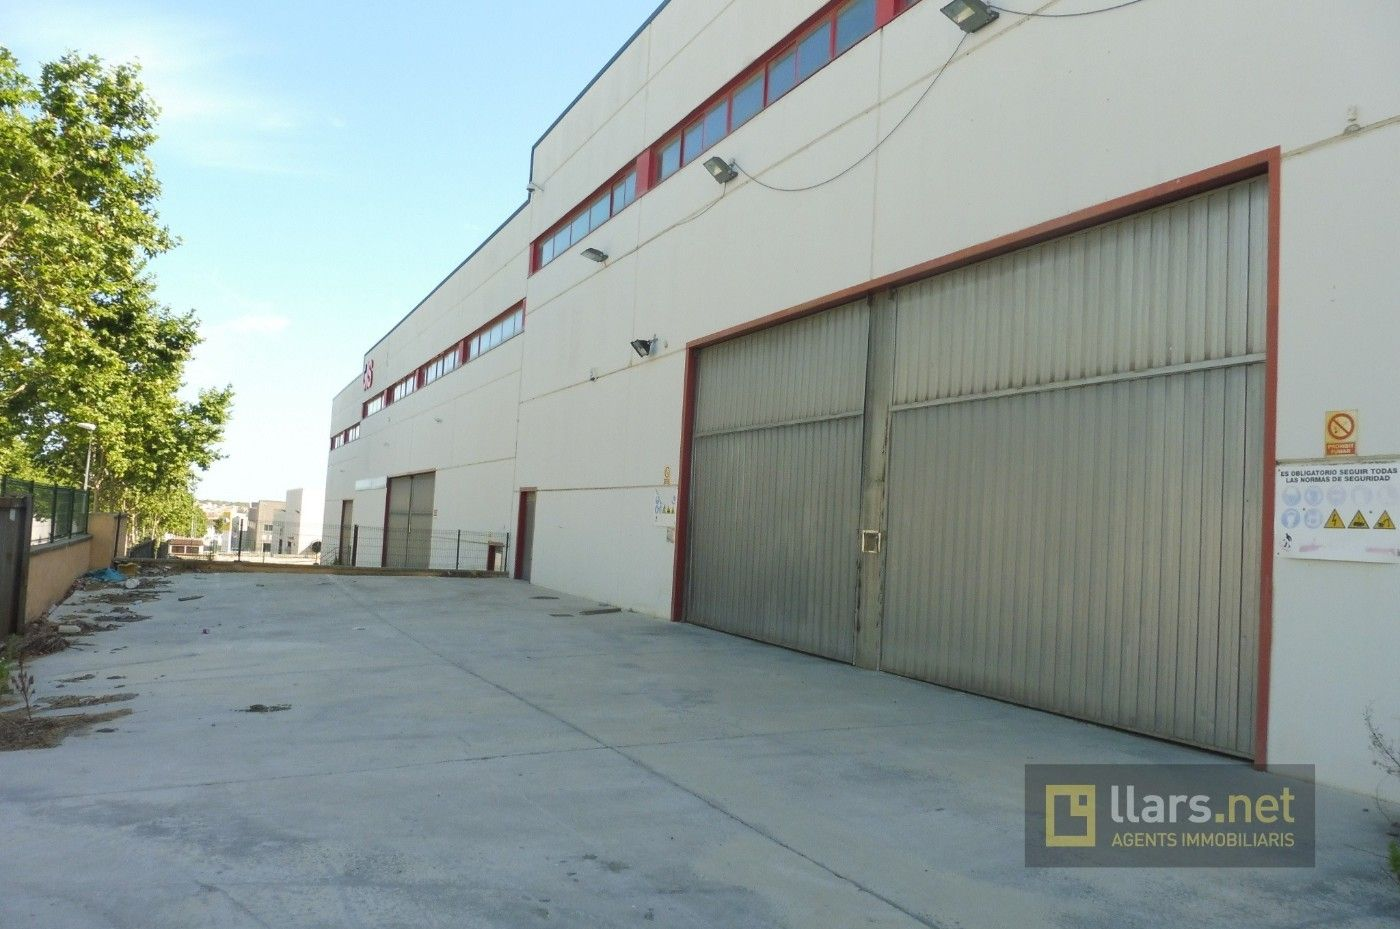 Industrial building in Carrer masia nova, 19. Nave industrial de 705 m2